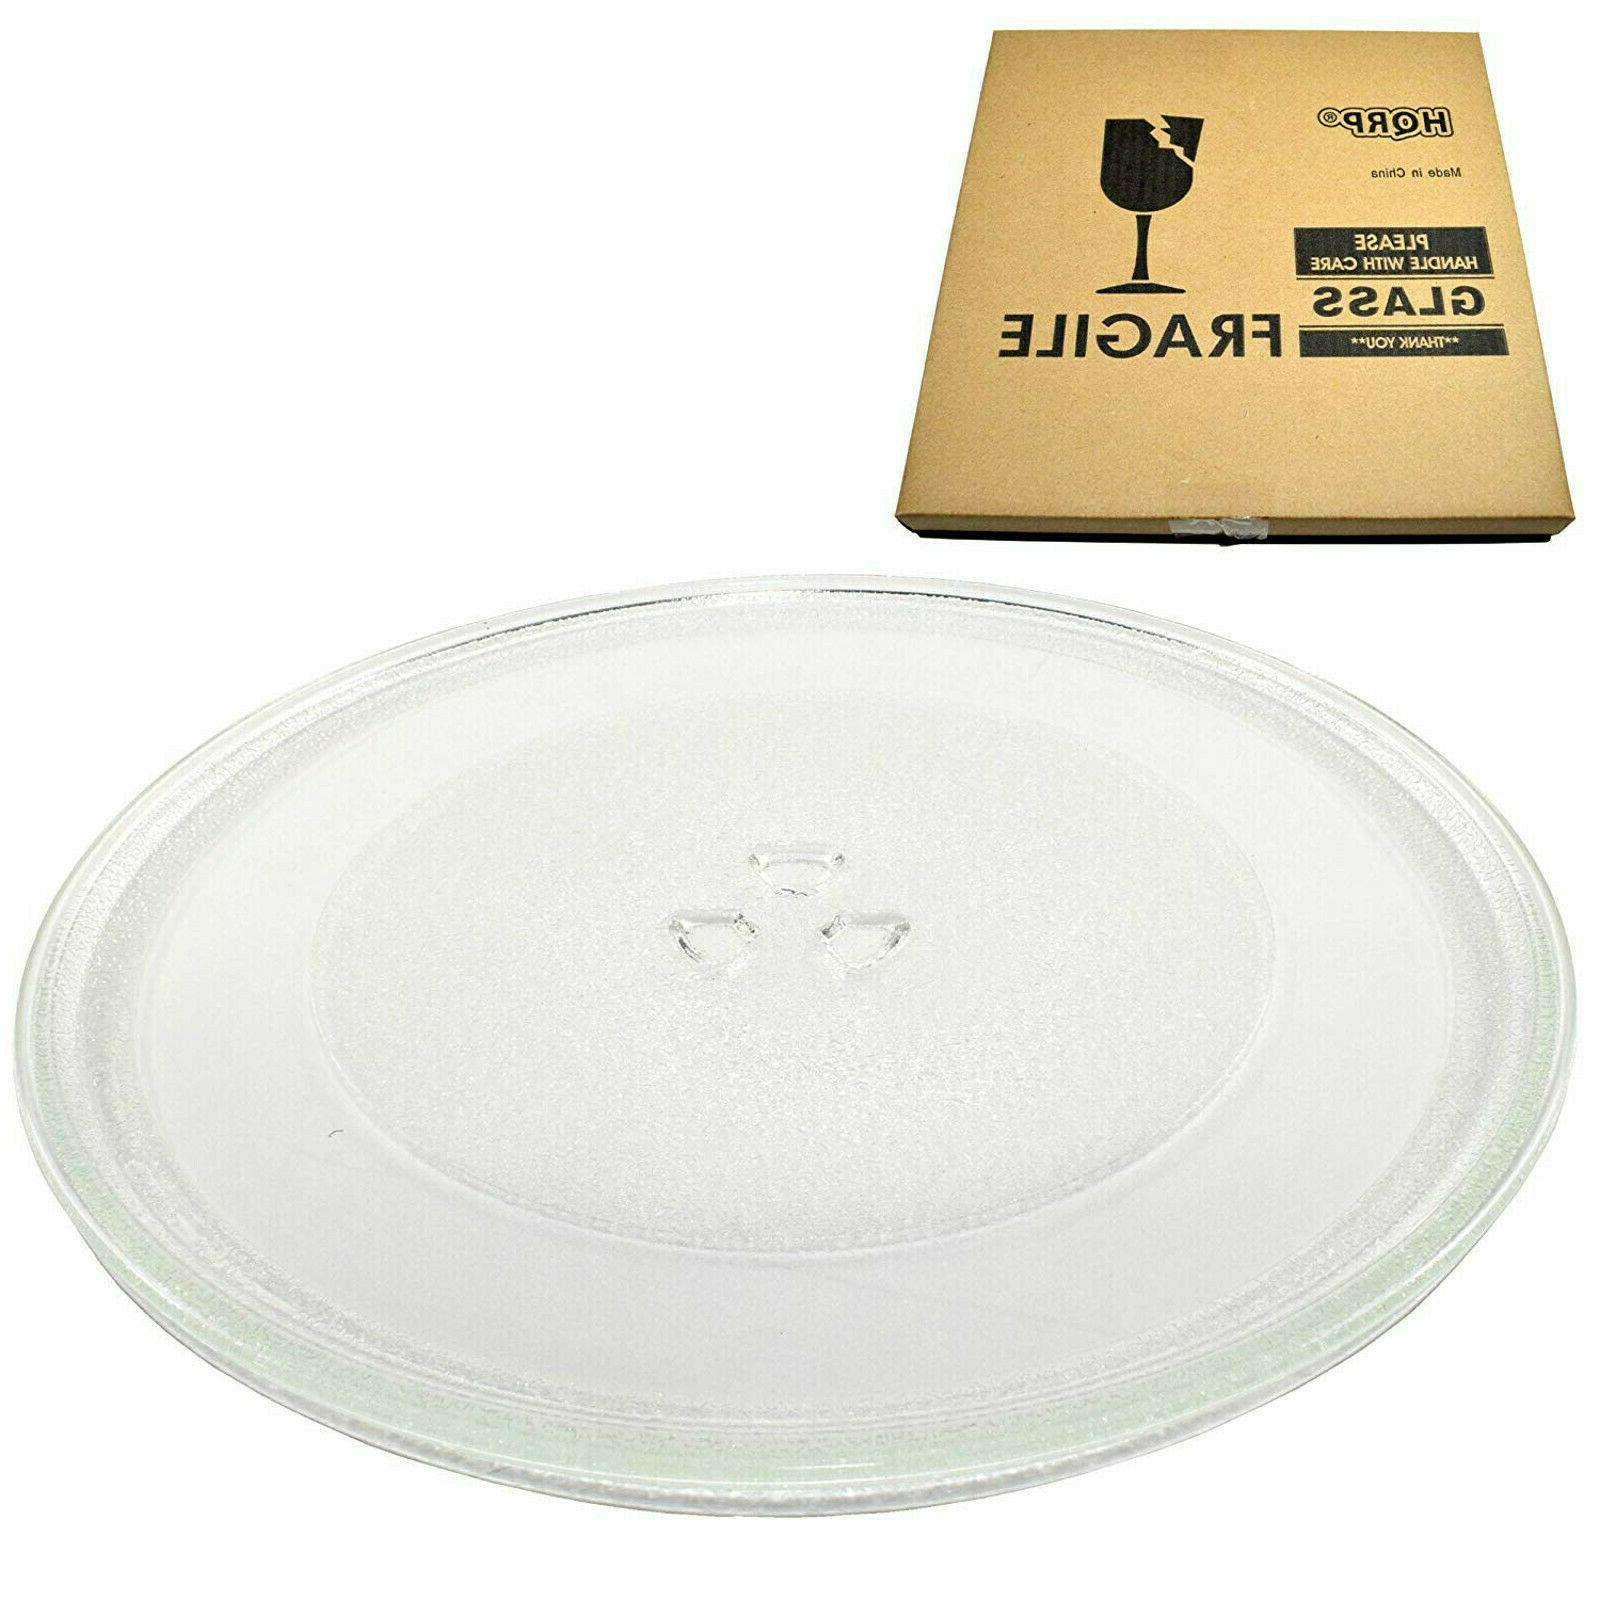 12 inch glass turntable tray fits whirlpool